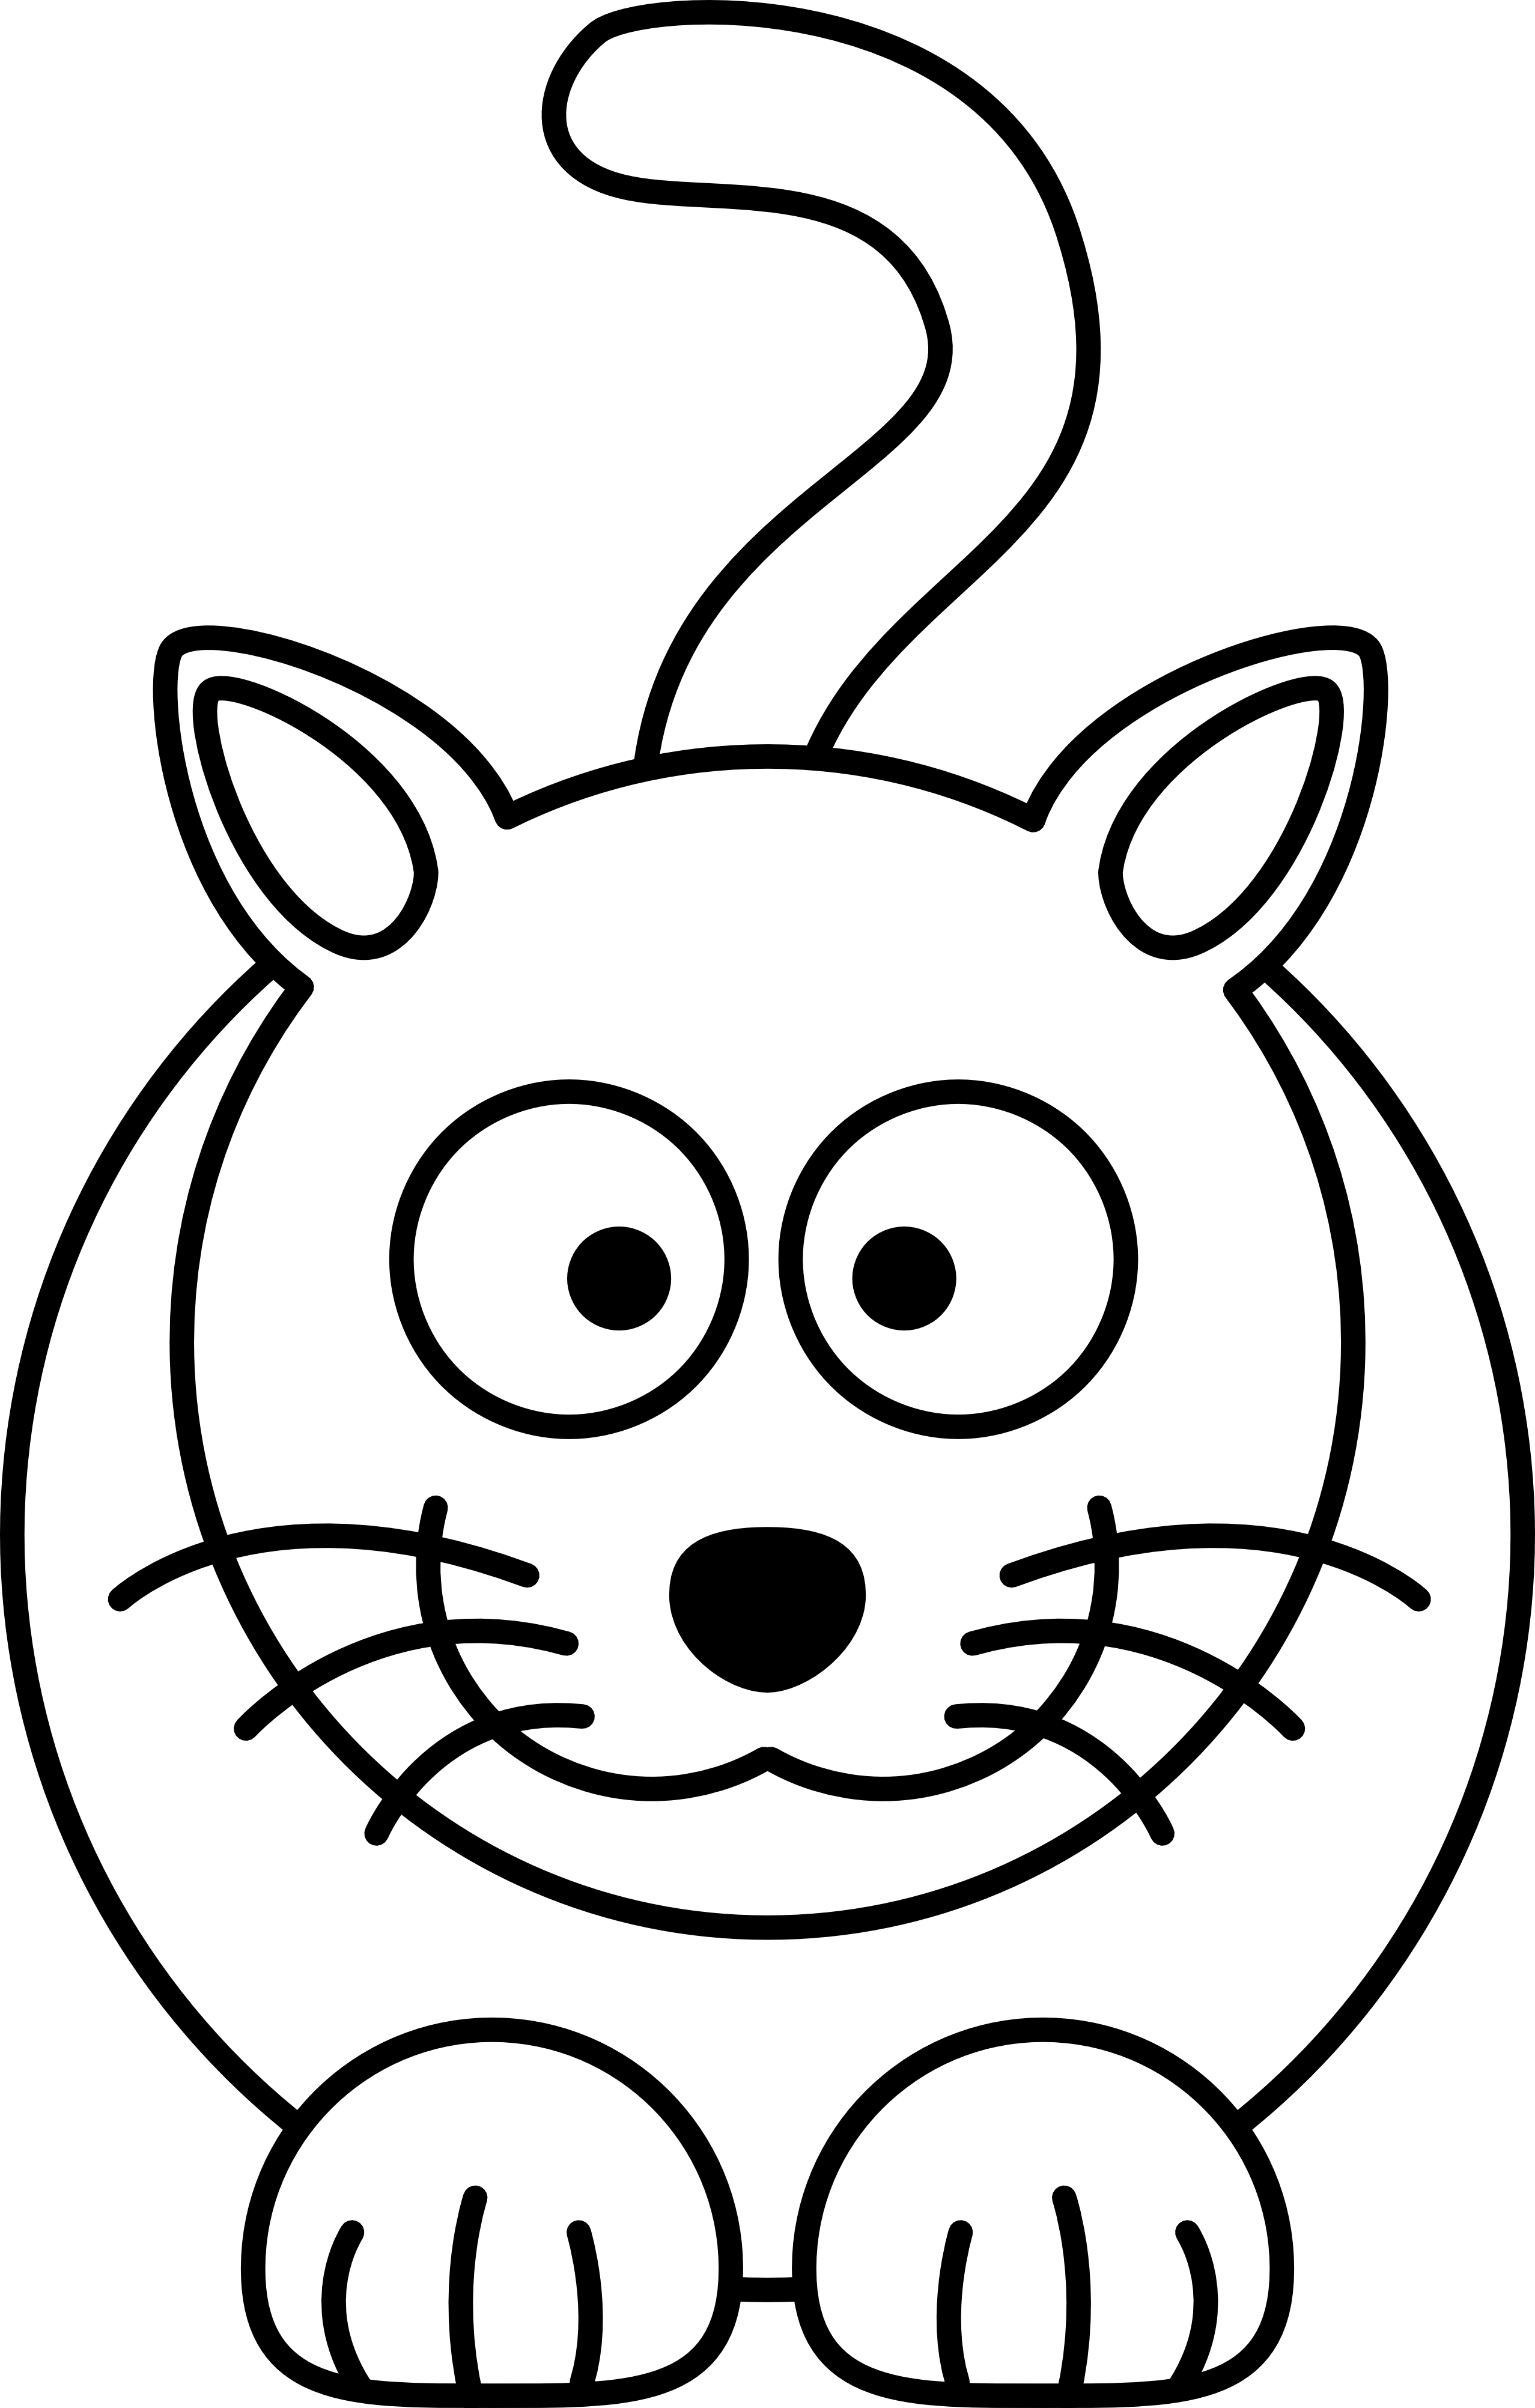 2555x4009 Puppy And Kitten Clipart Black And White Free